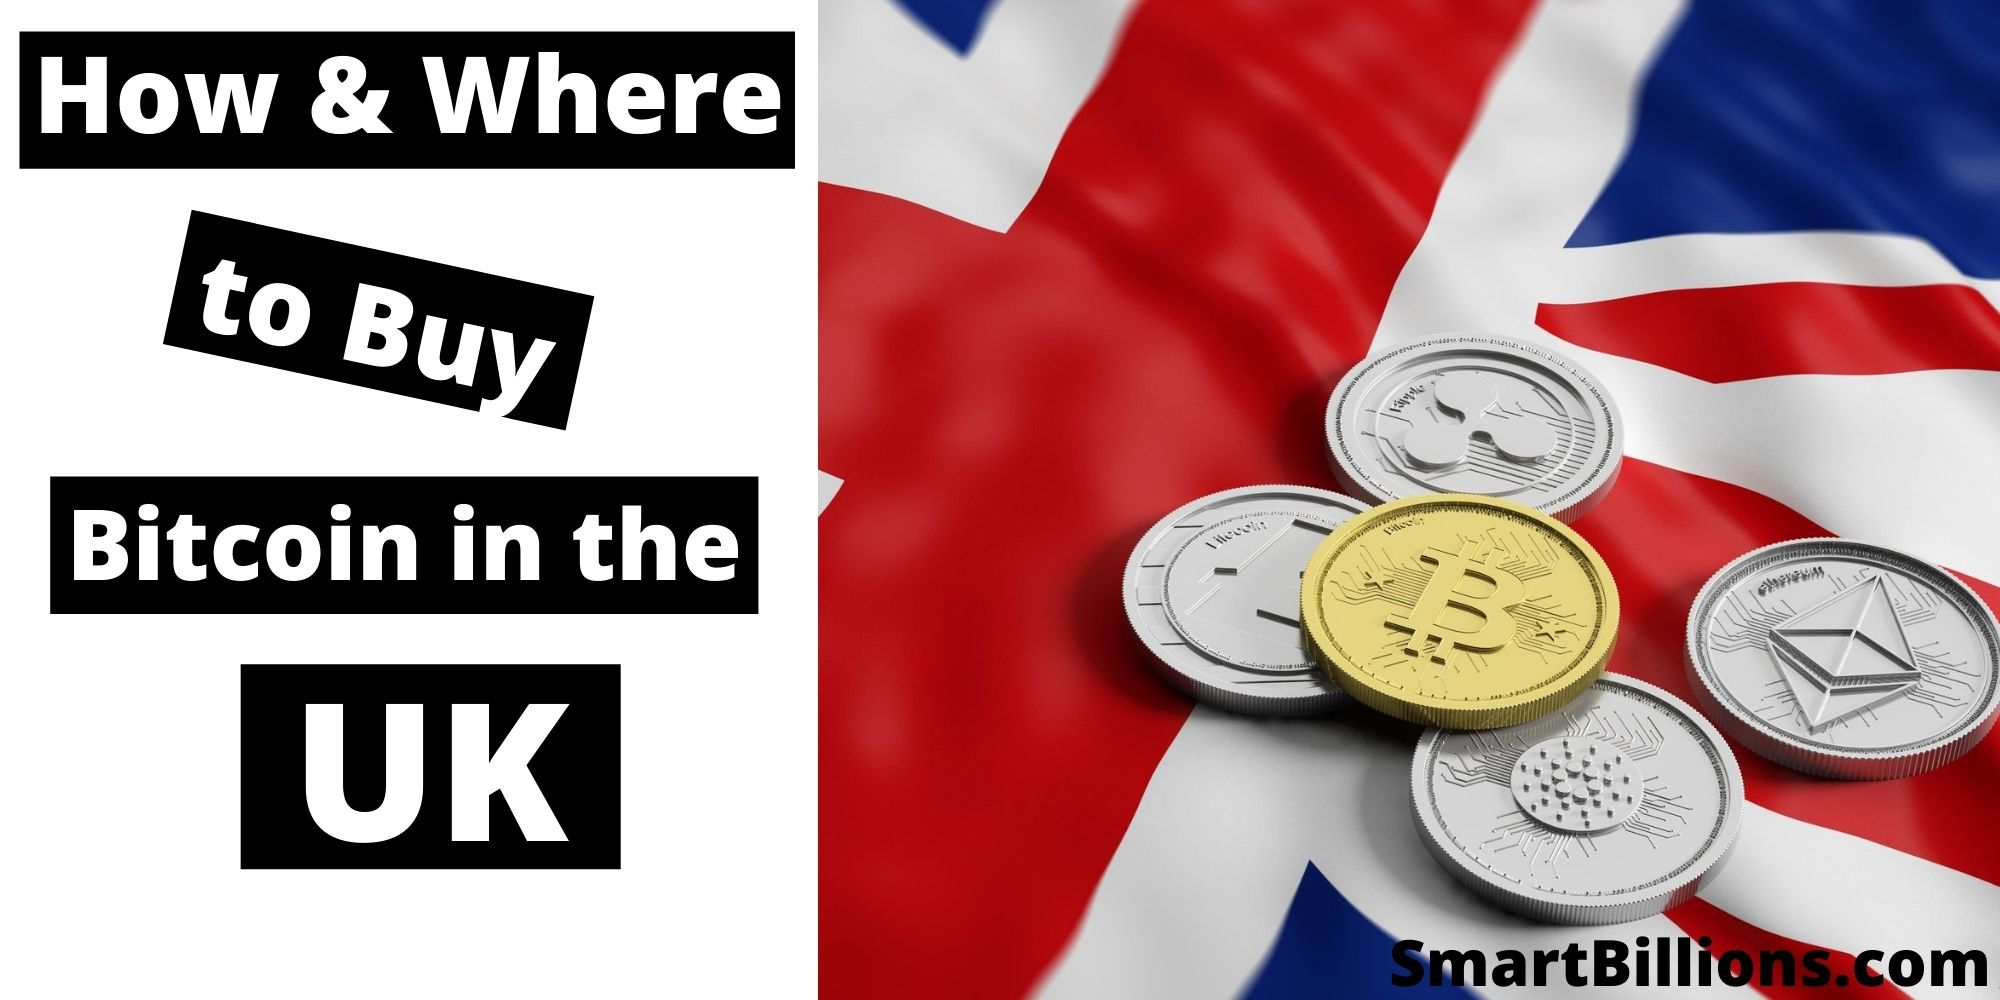 how & where to buy bitcoin in the UK